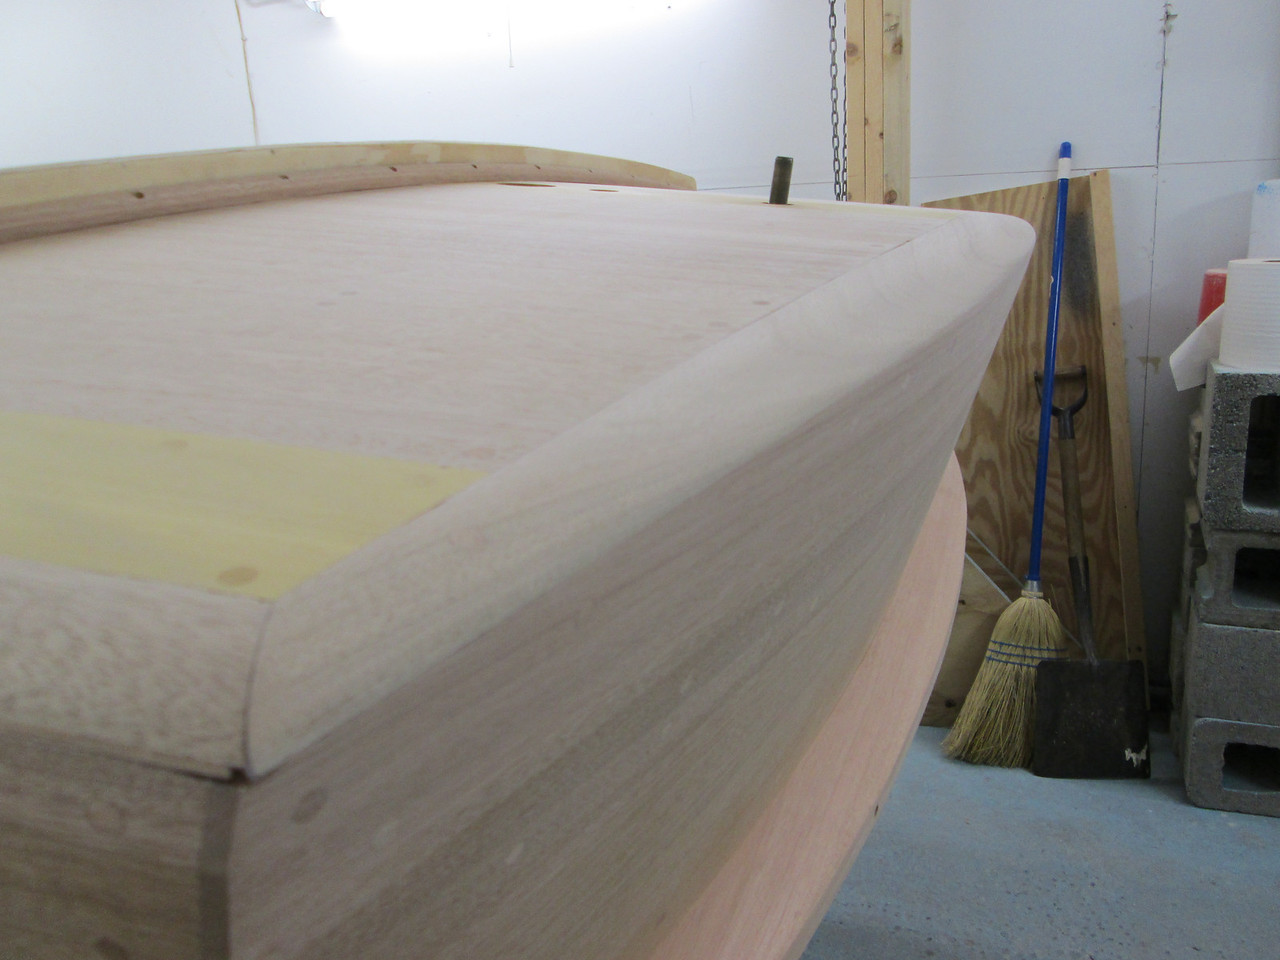 Port view of transom cover board.